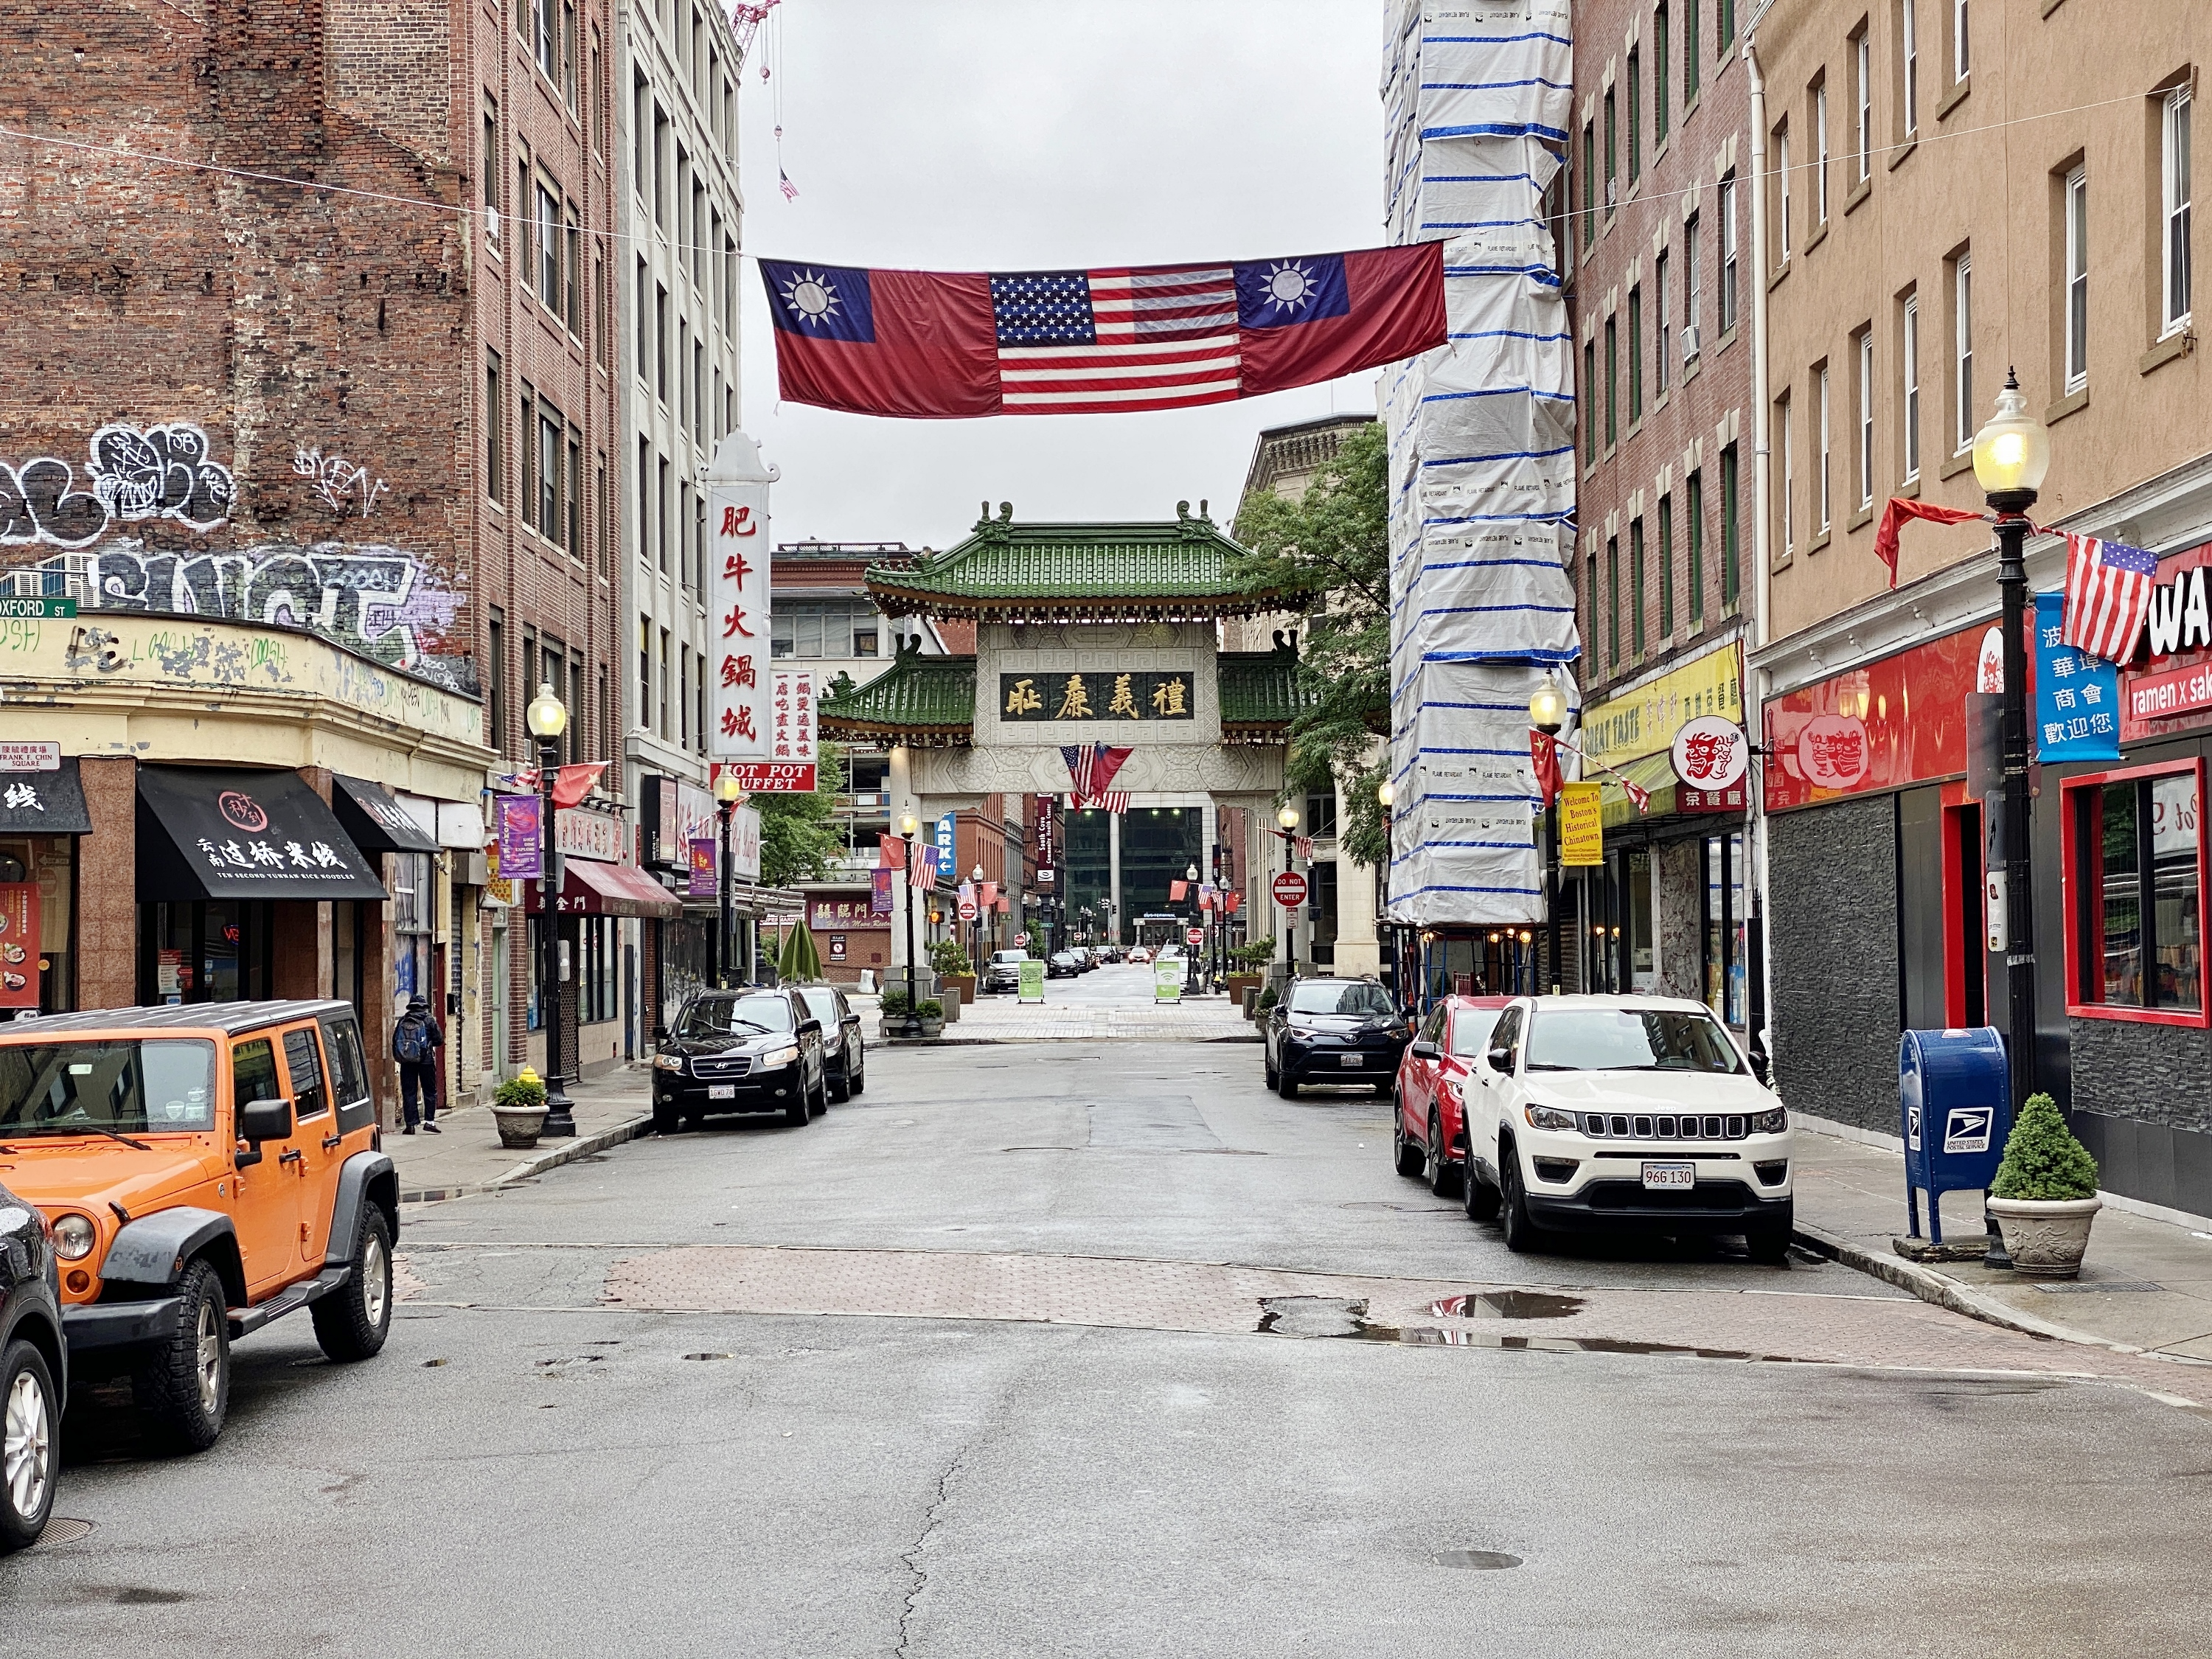 Walking around Chinatown early in the morning before everyone wakes up :)